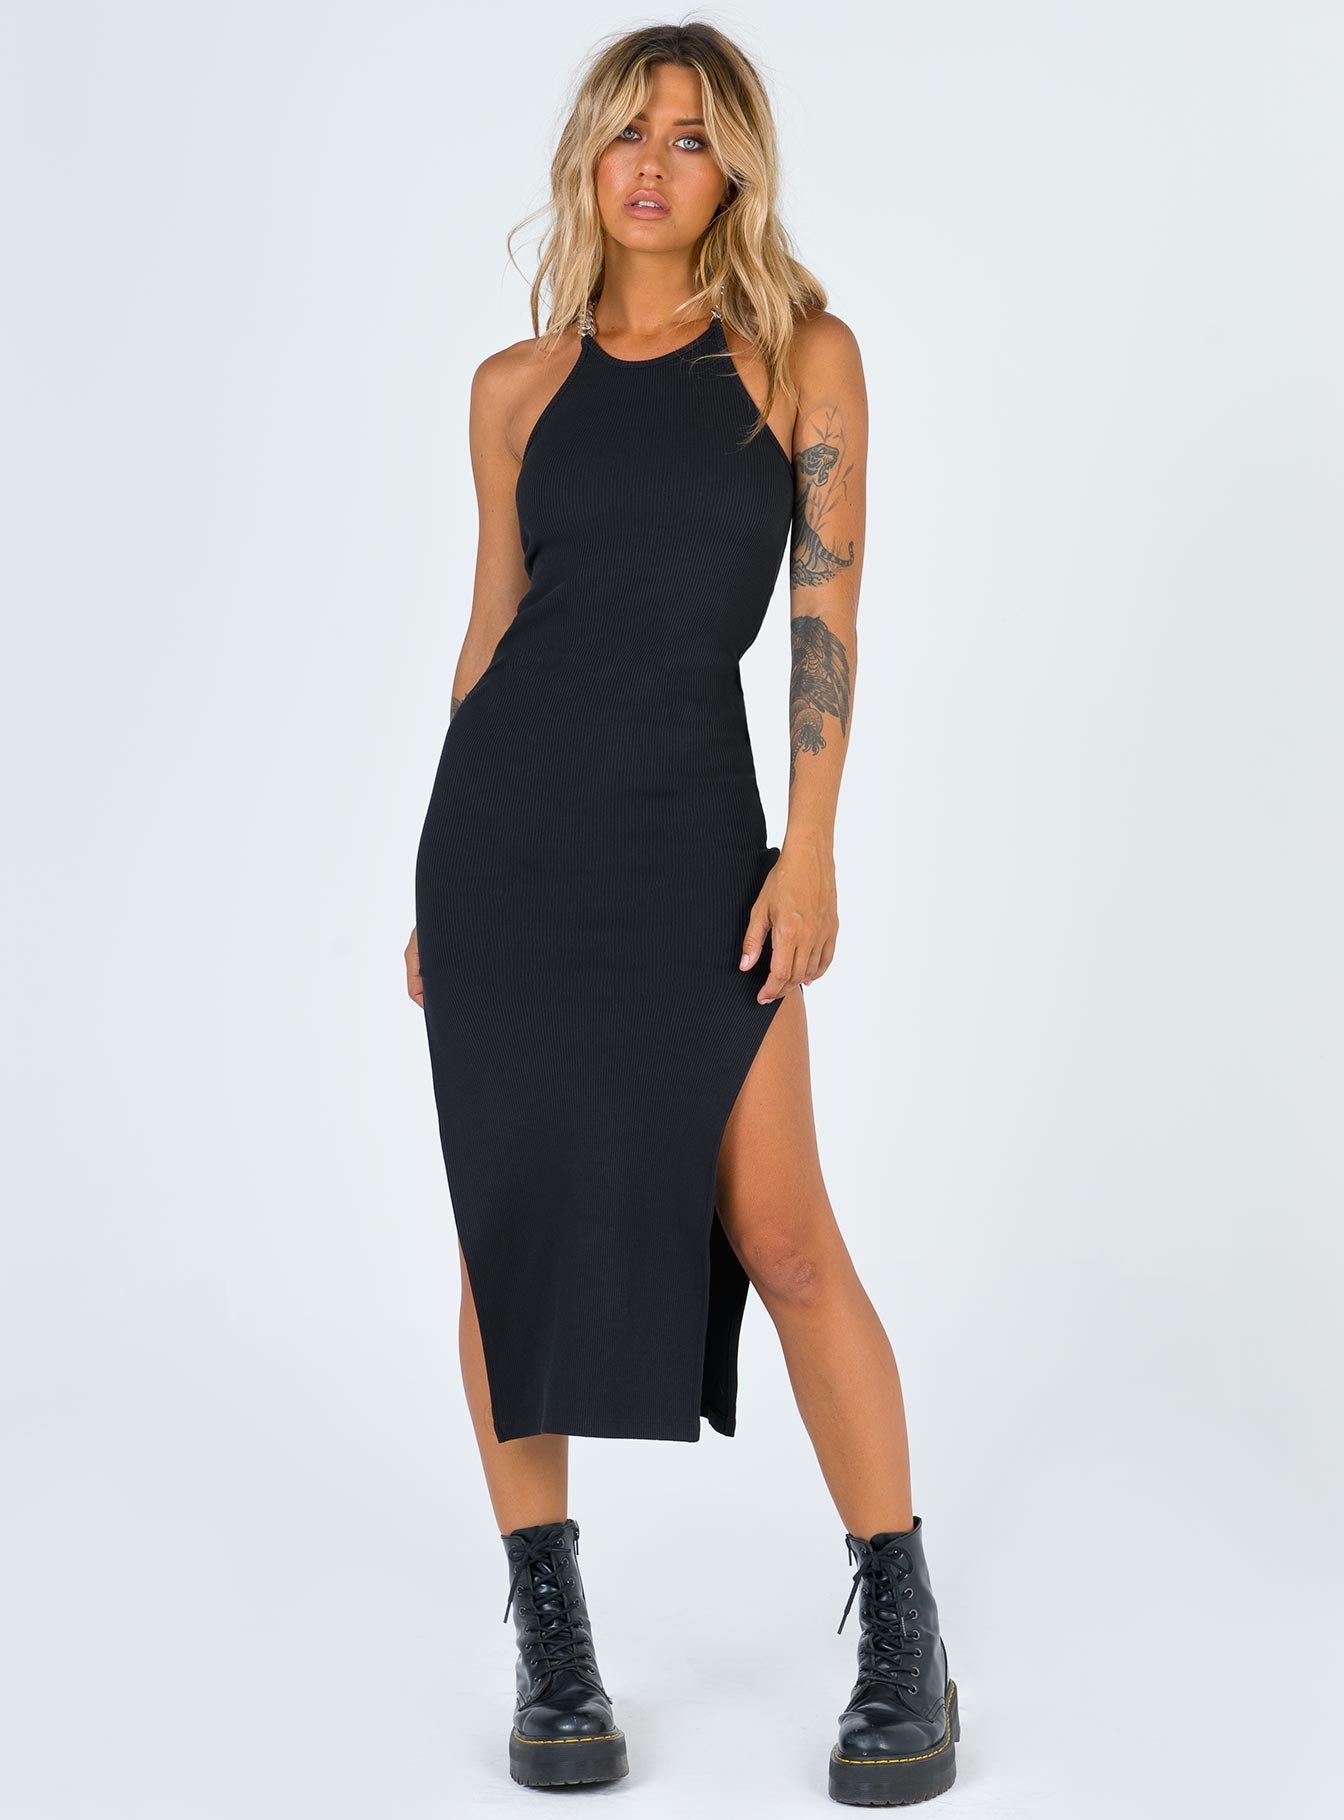 The Ragged Priest Release Dress